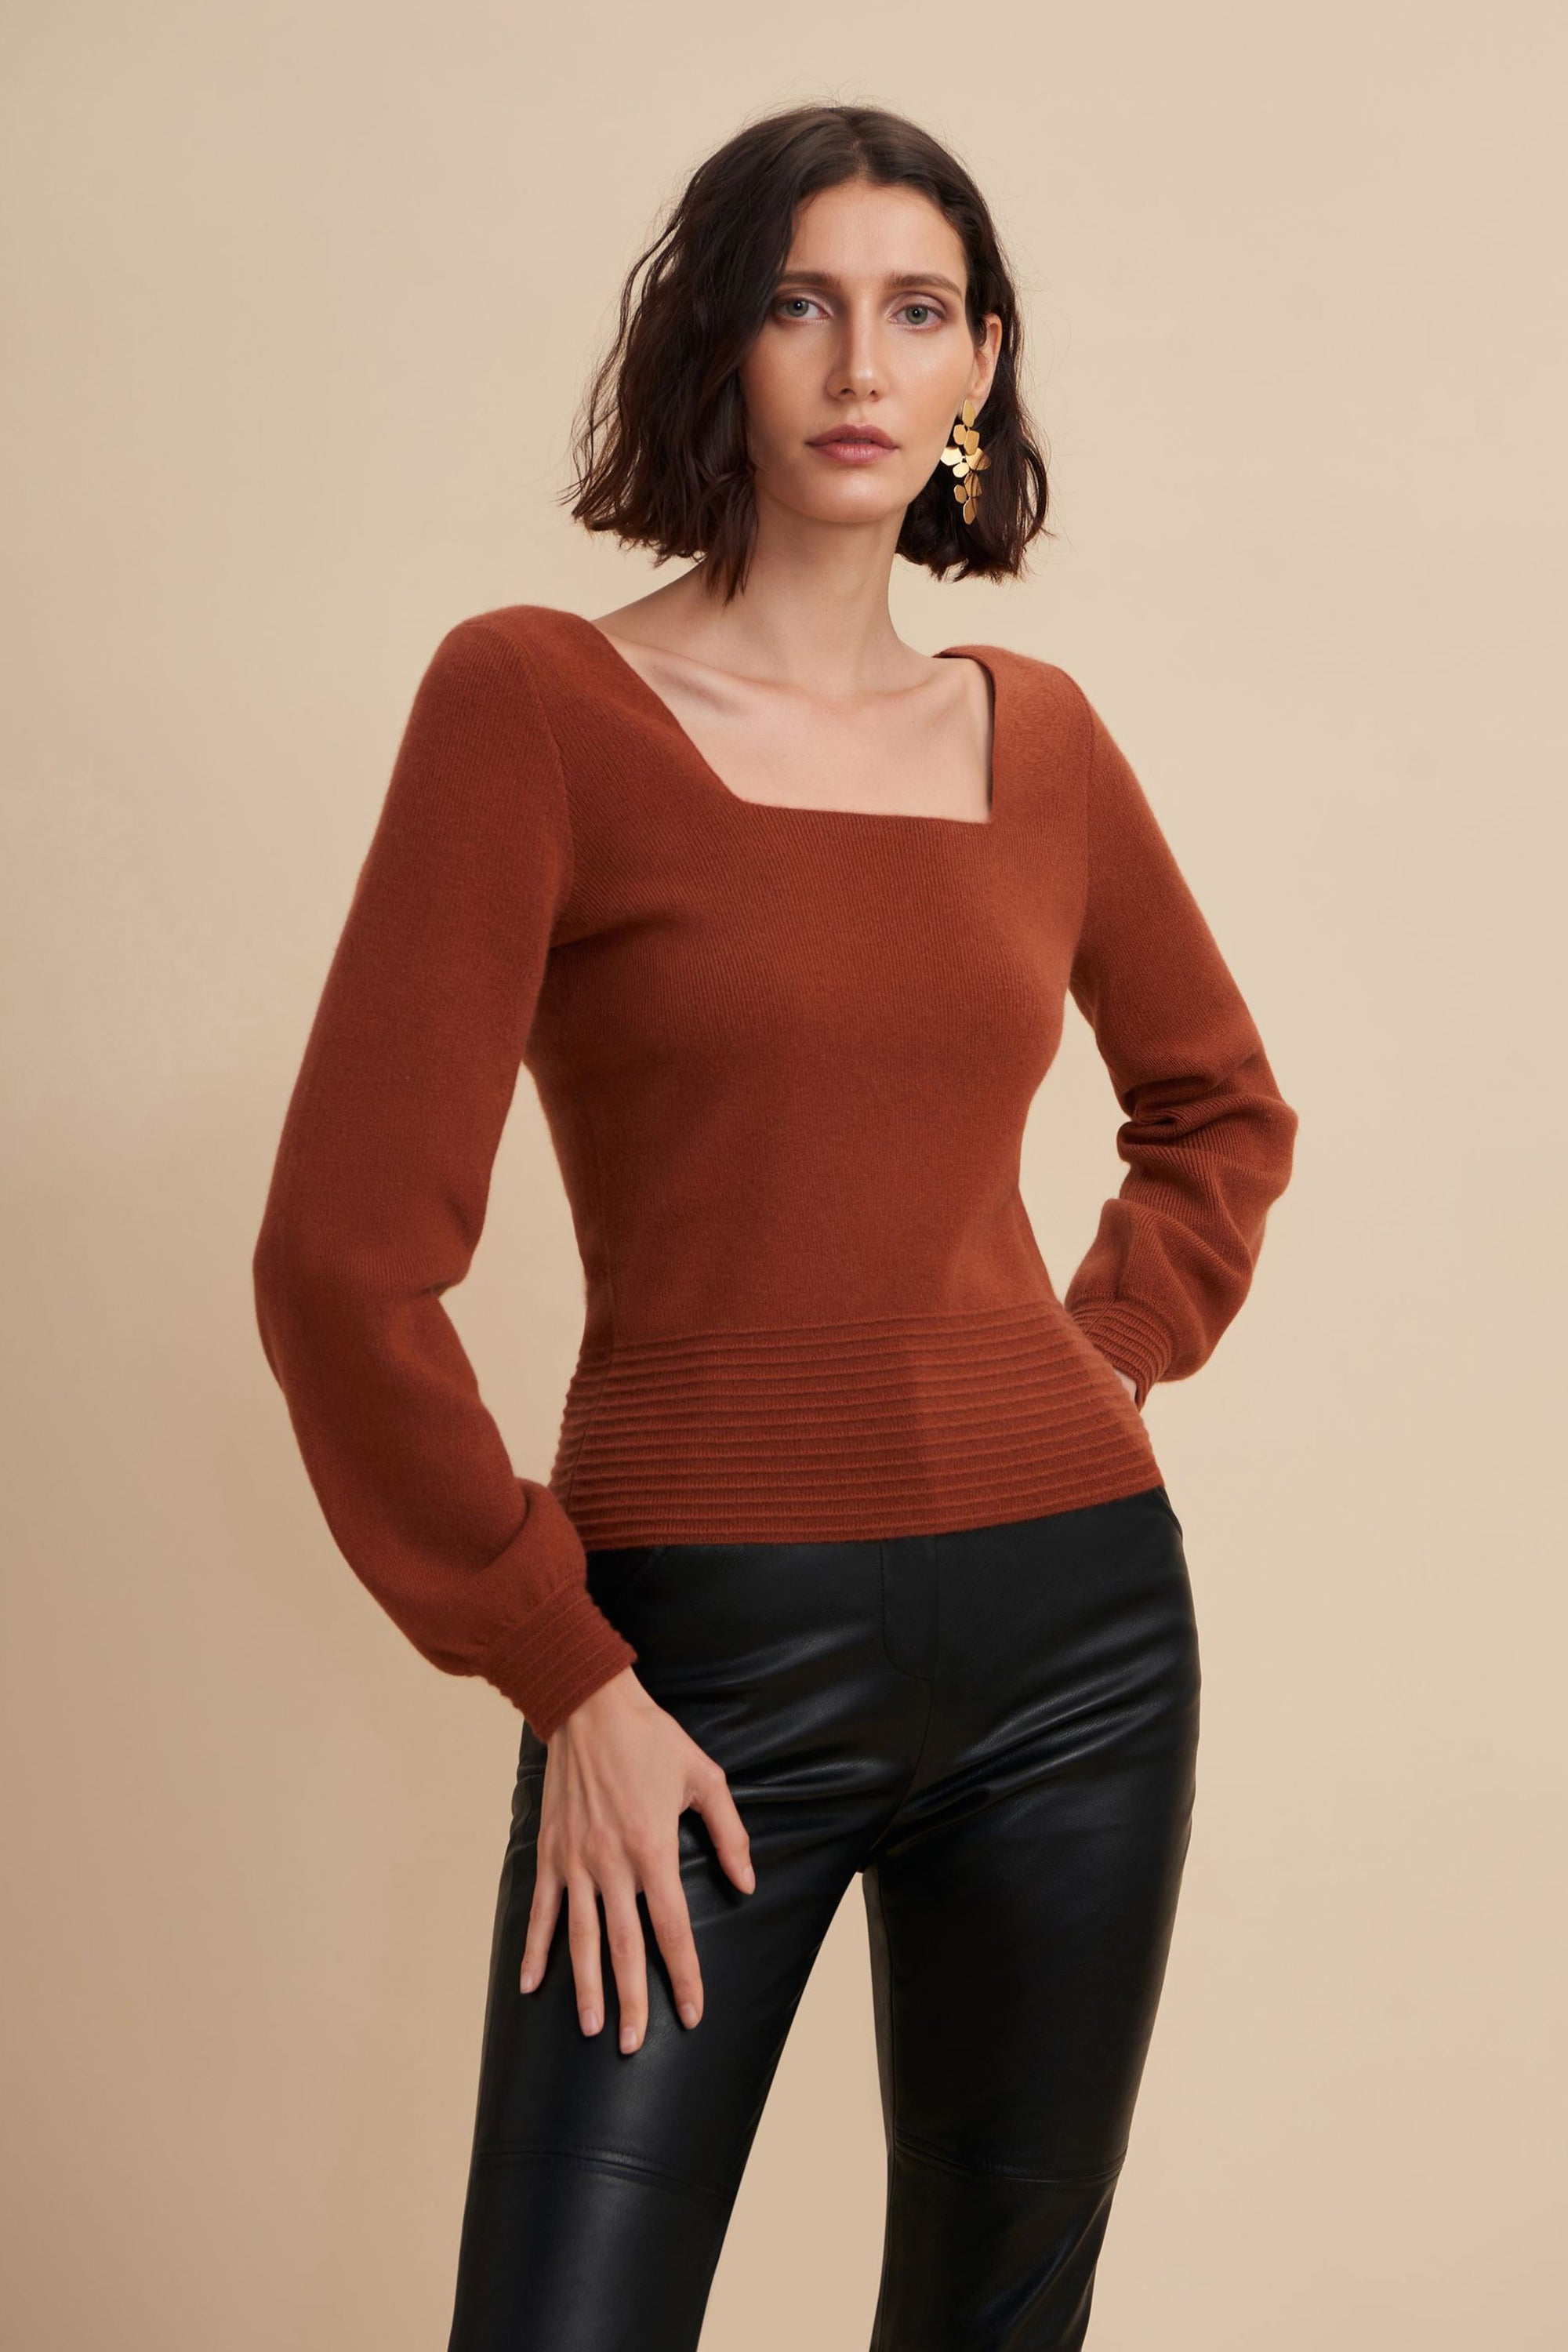 square neck sweater, square neck top, square neck, square neckline, cashmere sweater, bishop sleeve, bishop sleeve sweater, bishop sleeve top, red cashmere sweater